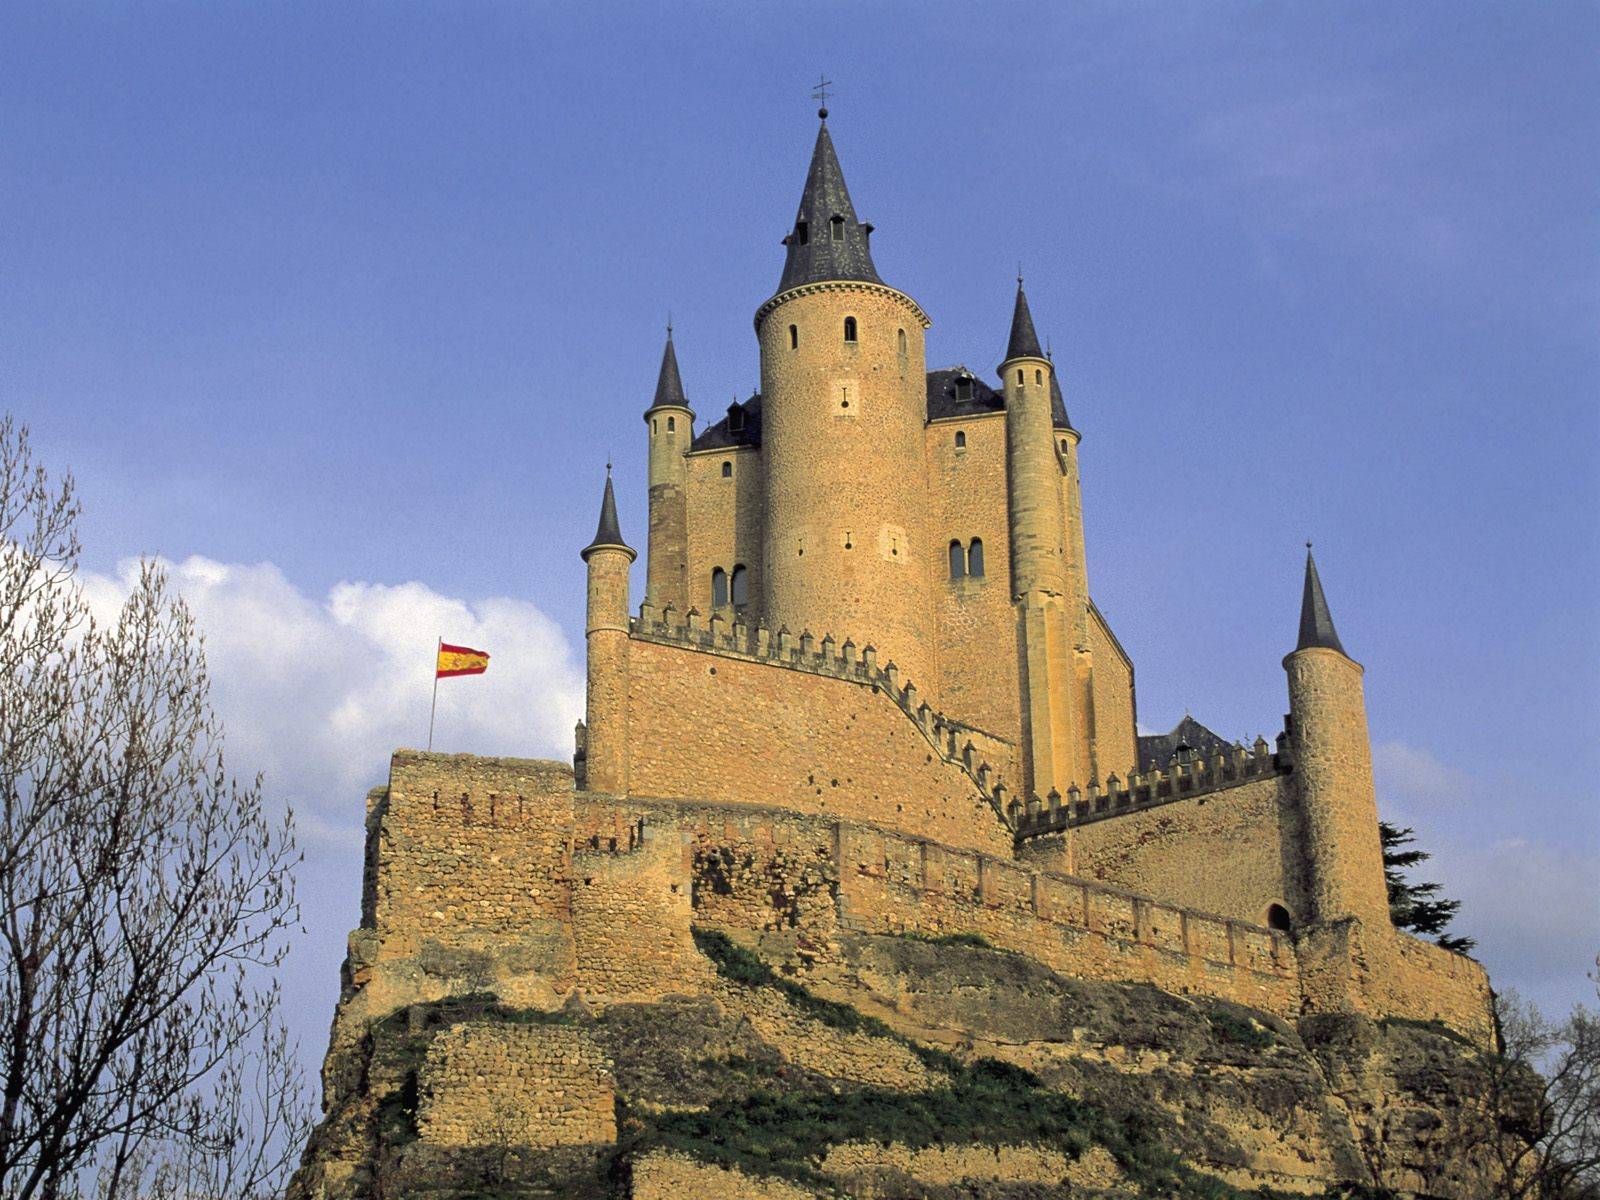 Alcazar Tower Segovia Spain